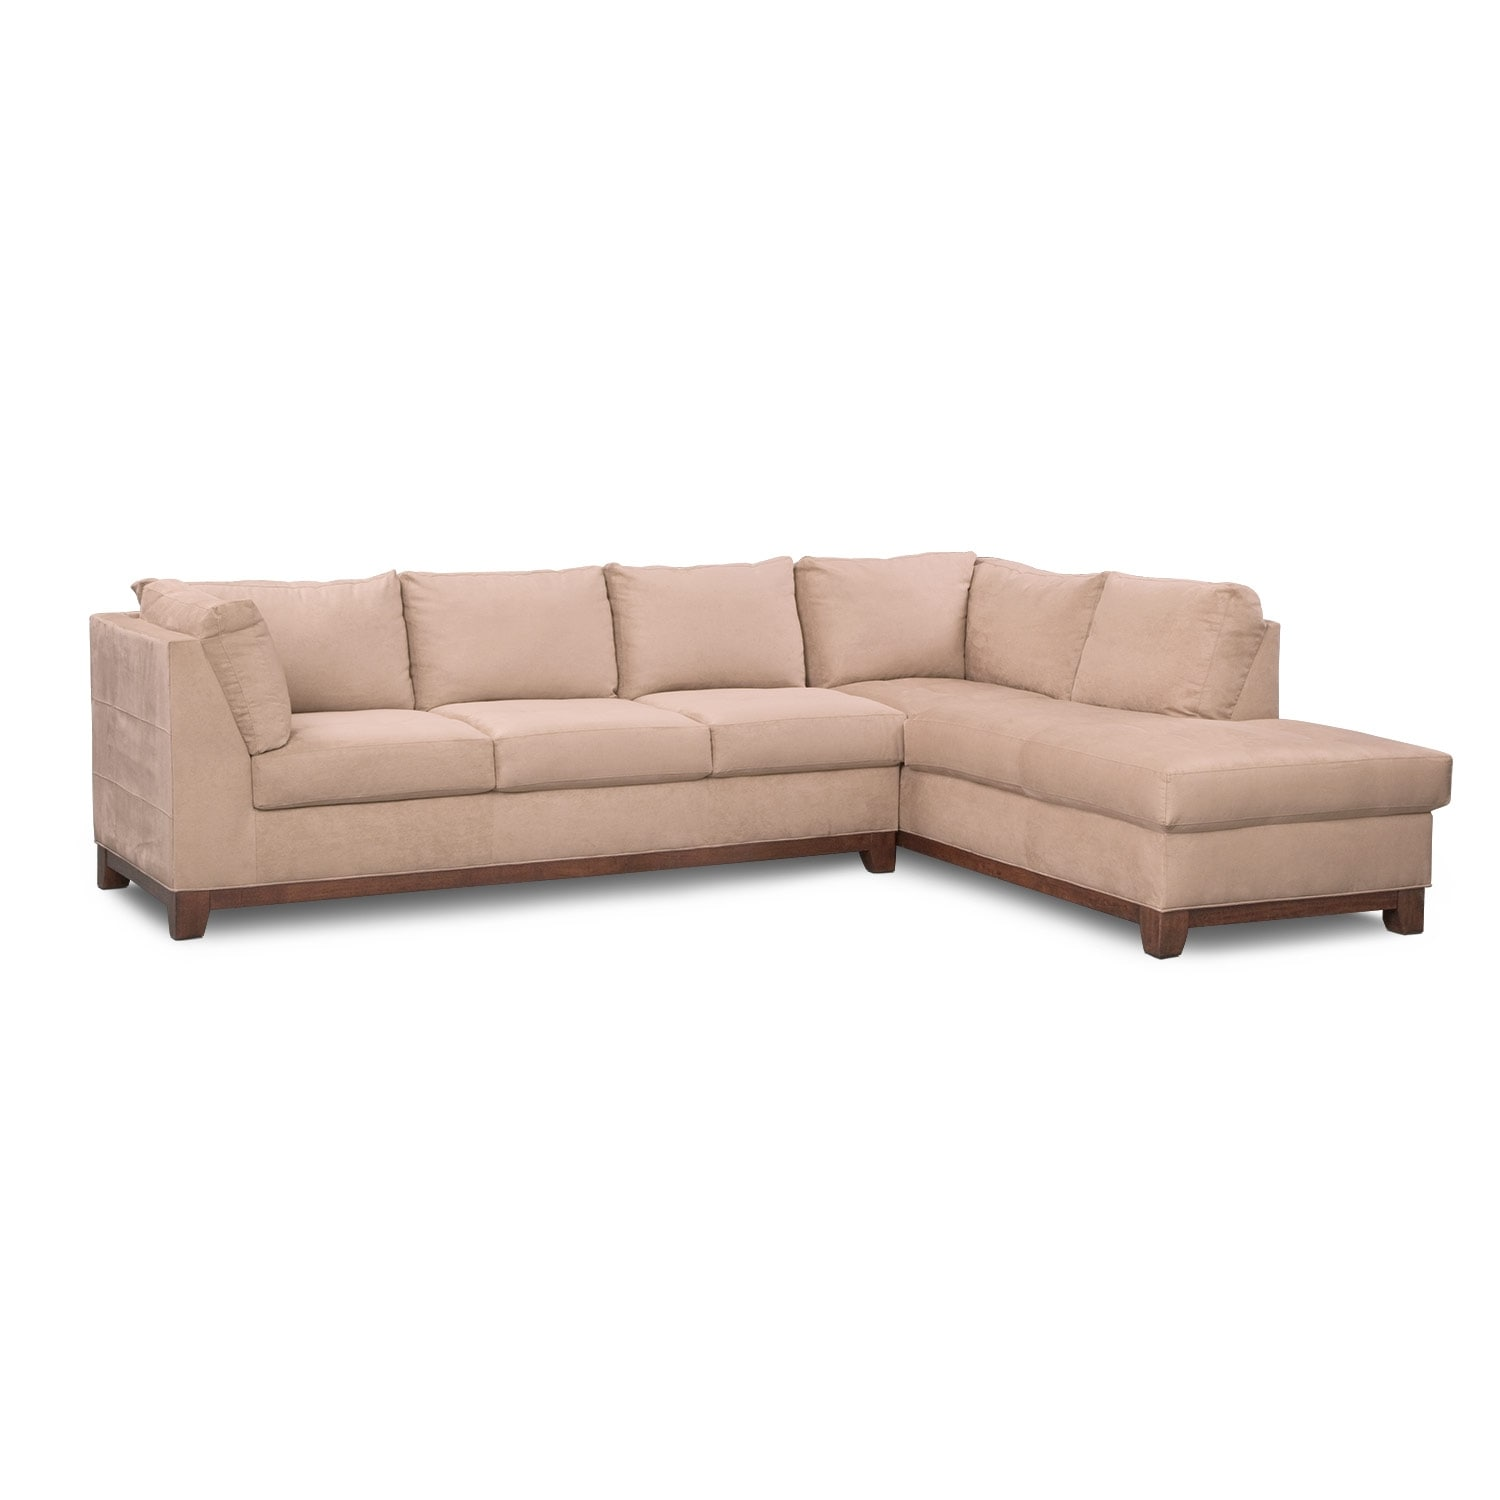 Living Room Furniture - Soho 2-Piece Sectional with Right-Facing Chaise - Cobblestone